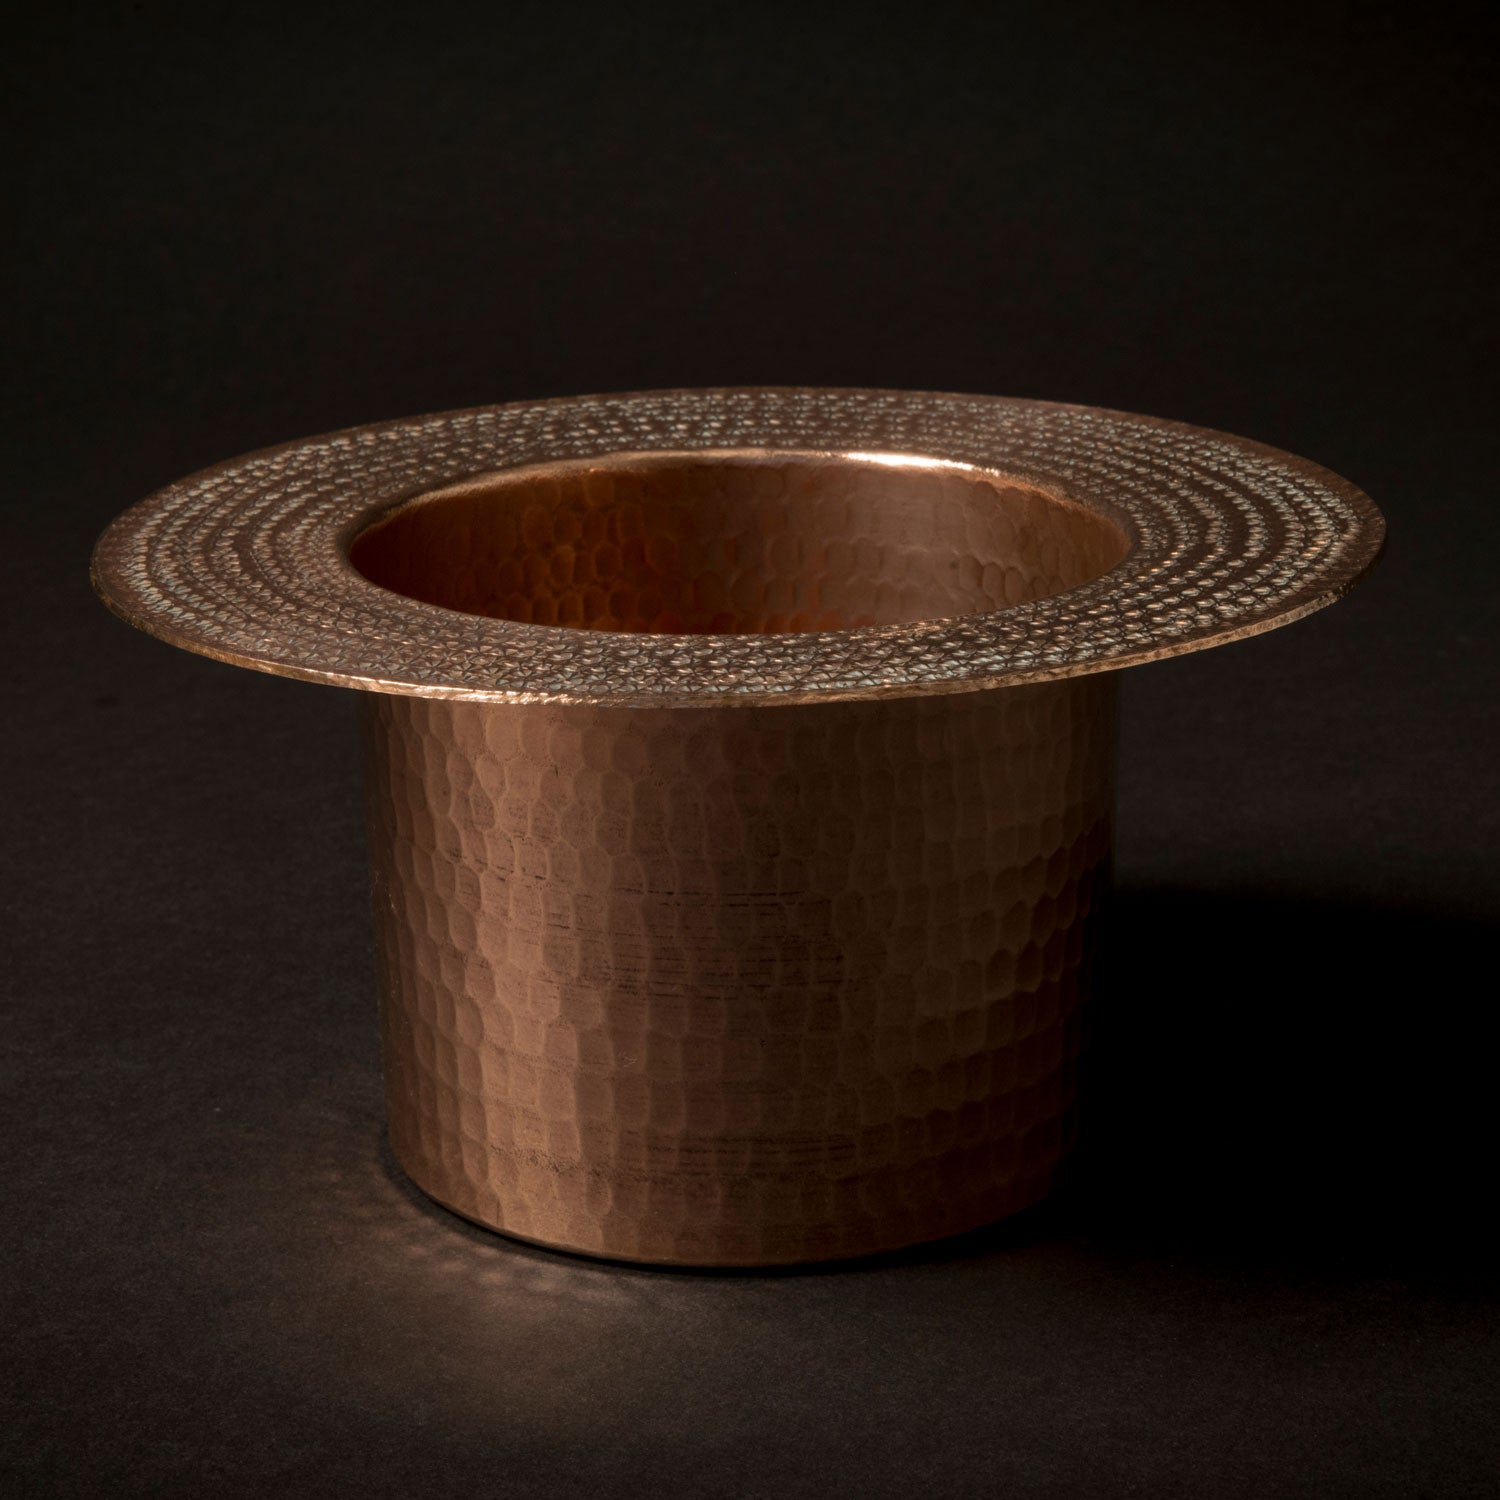 Laura Kirar artisanally-crafted copper platter with polished copper finish